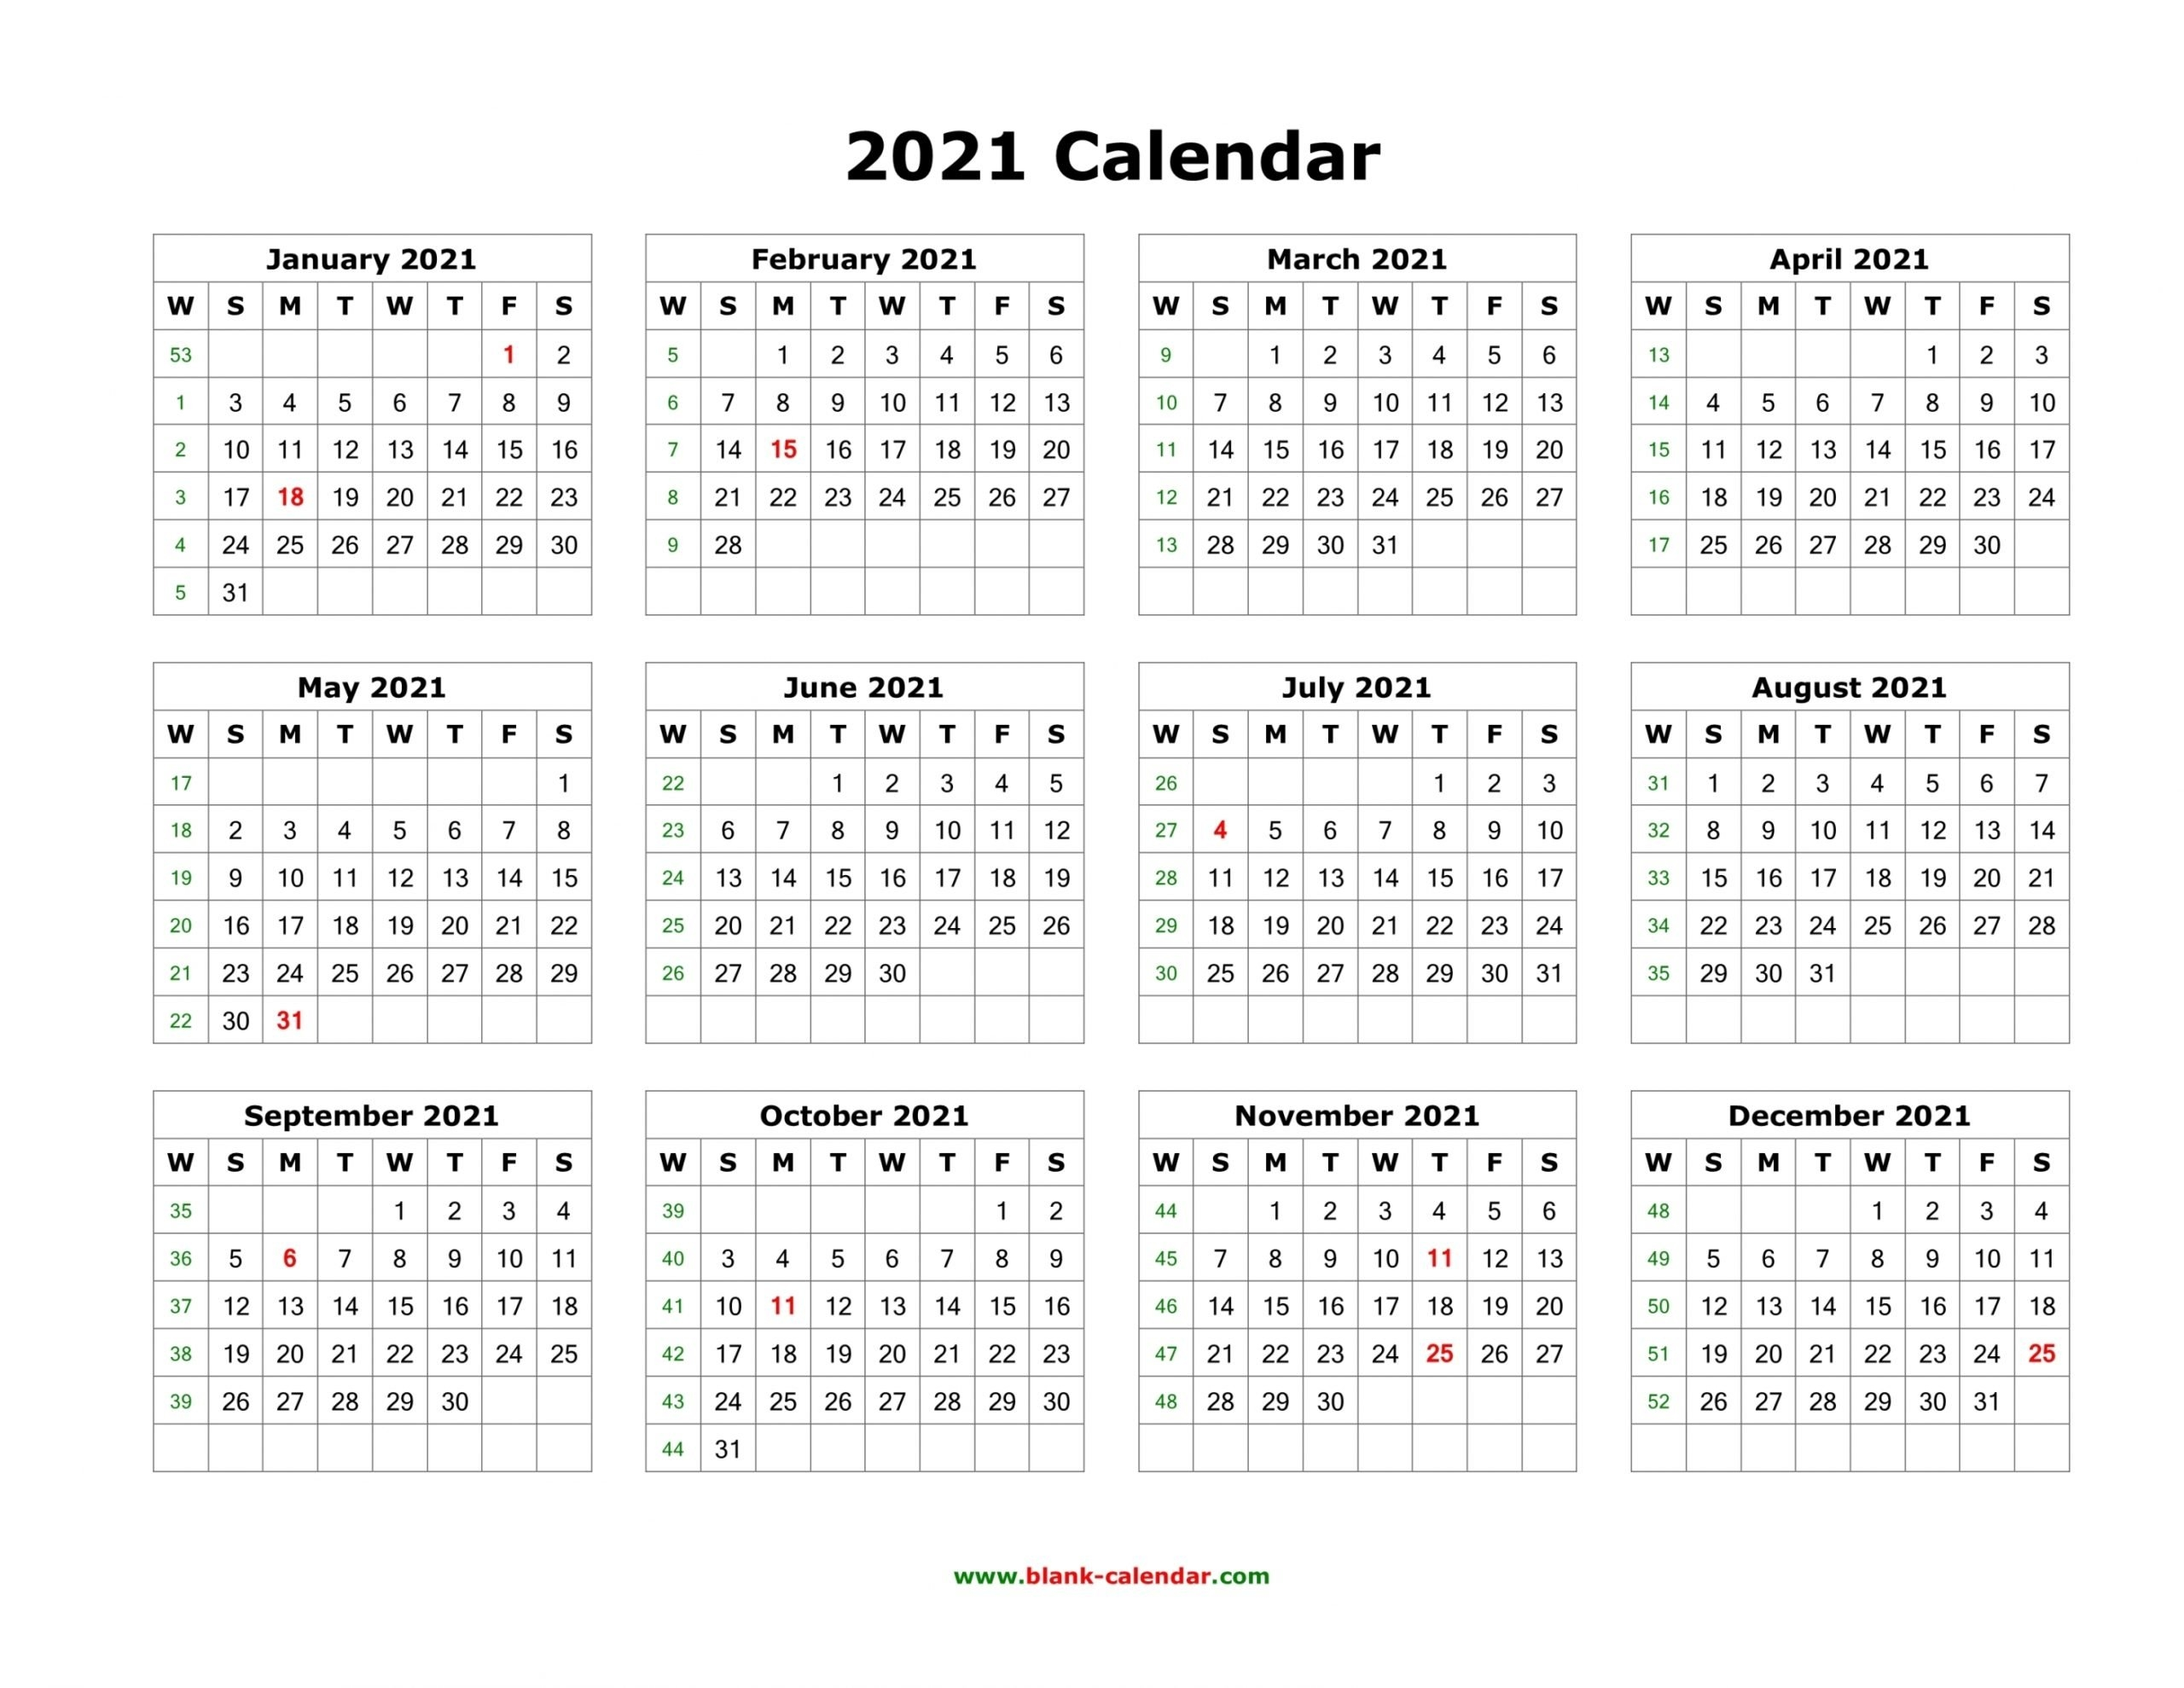 One Page Calendar 2021 | Free Letter Templates with regard to One Page2021 Calendar Printable Images Image